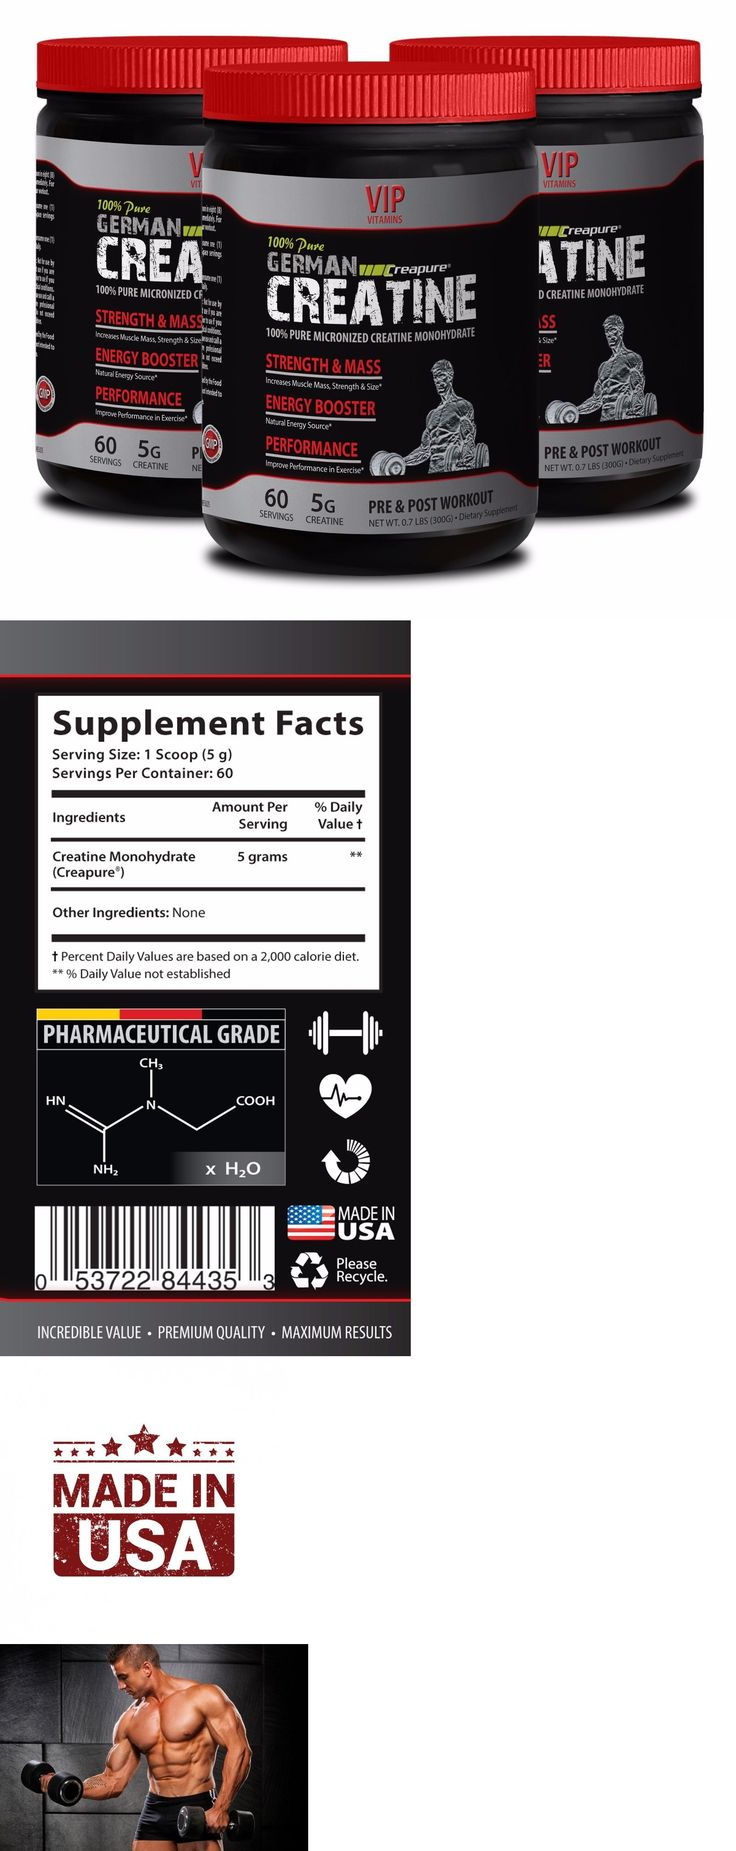 Sports Energy and Hydration: Anabolic Halo German Creatine Strength And Mass 300 G Enhances Brain Function 3B -> BUY IT NOW ONLY: $35.95 on eBay!